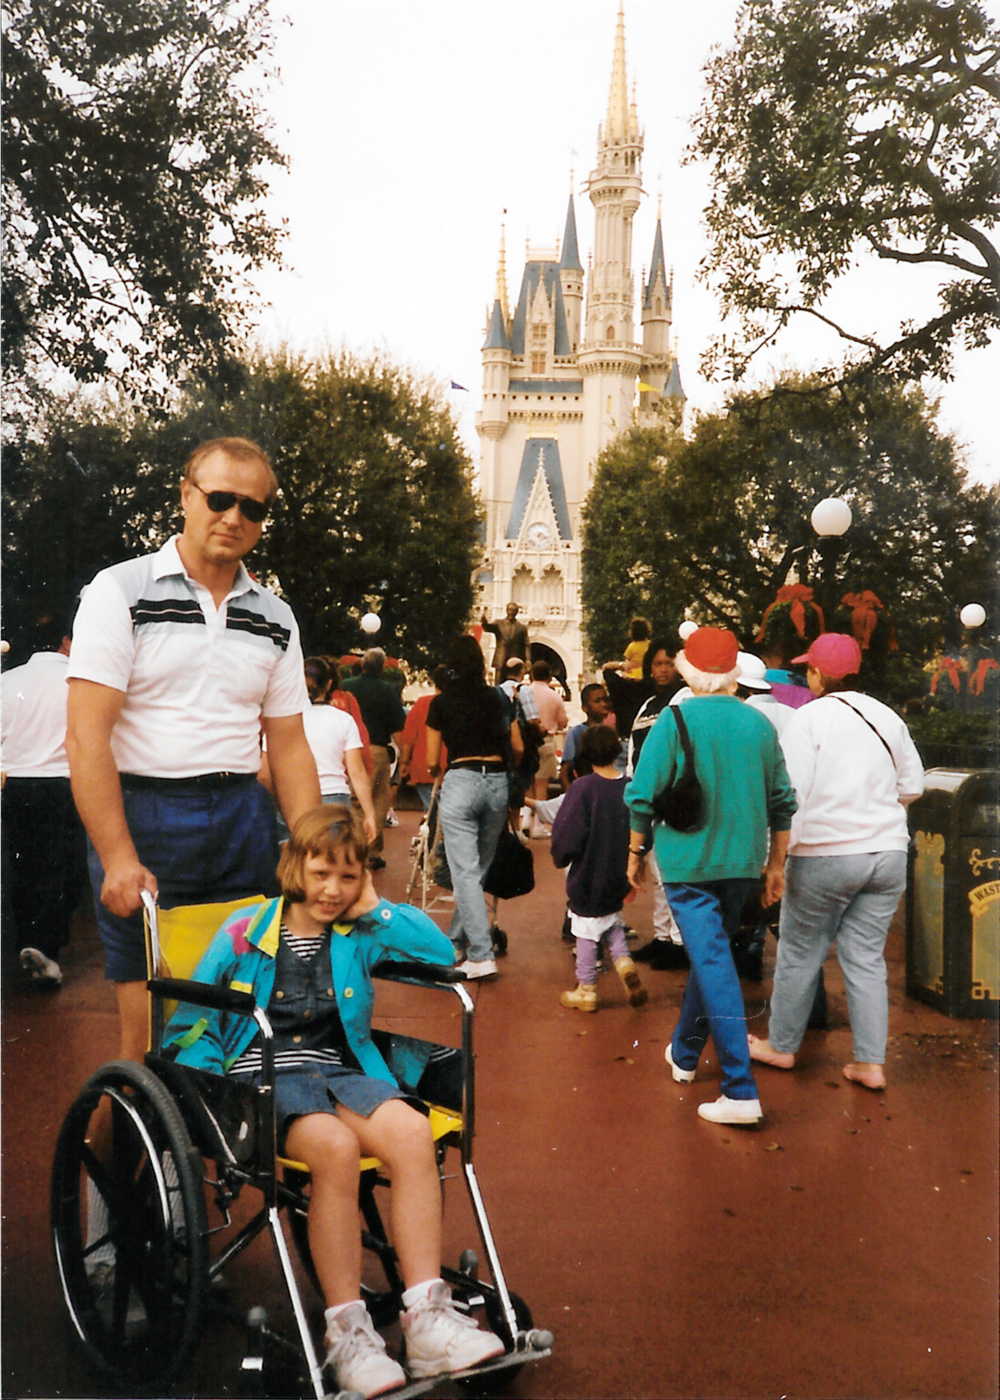 WheelchairSally@Disneyworld